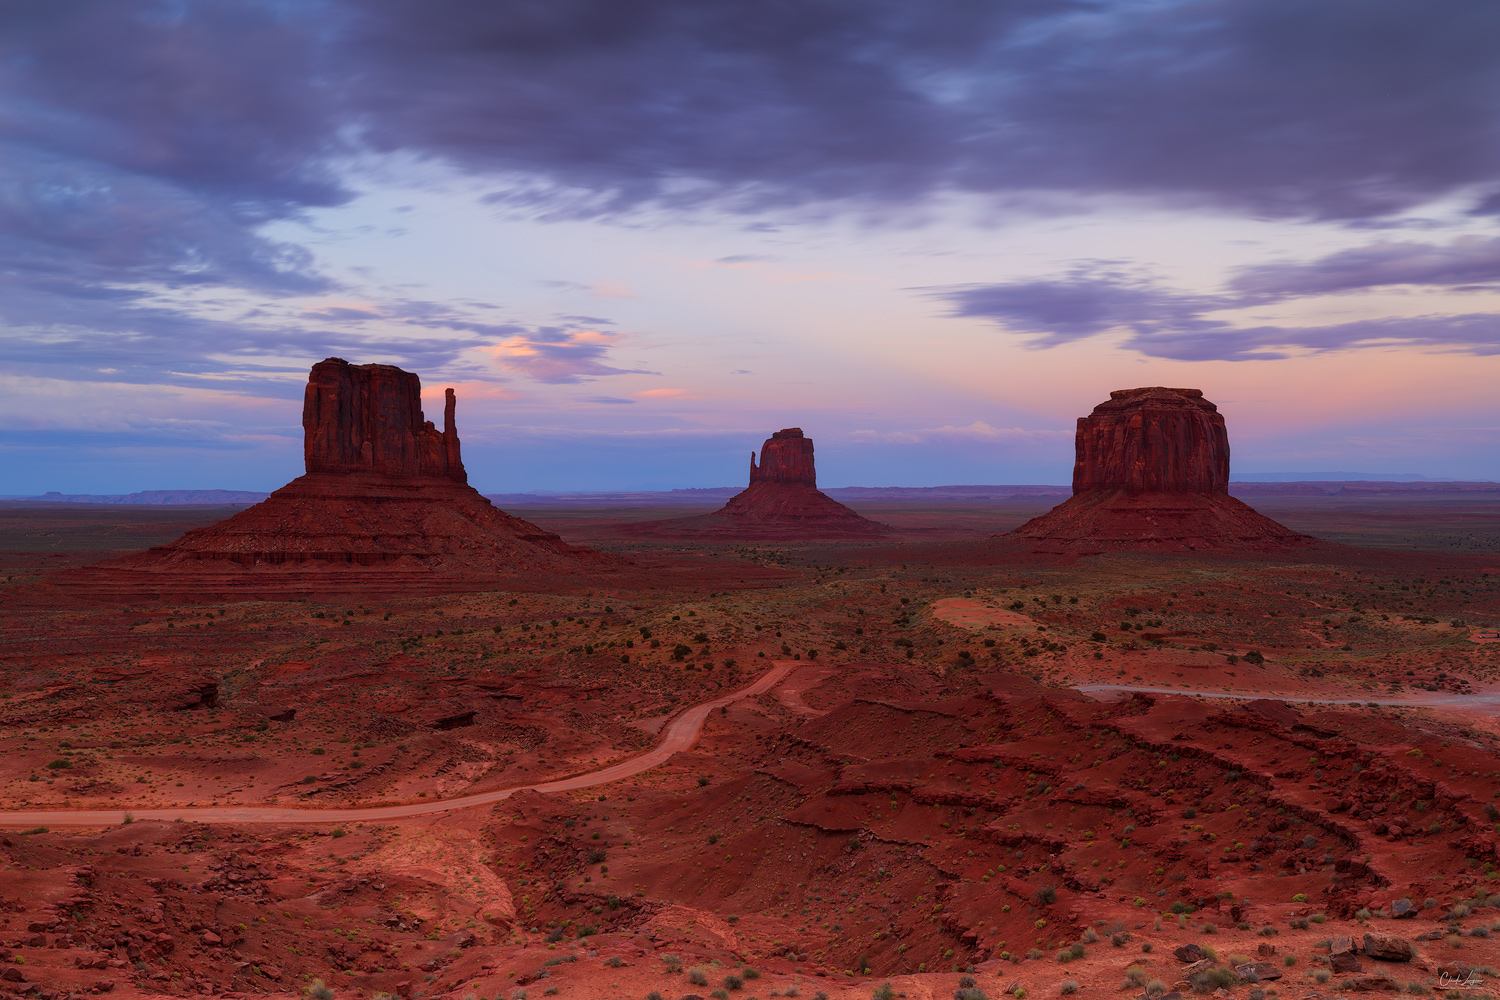 View of the sandstone towers at sunset in Monument Valley on the Arizona-Utah border.